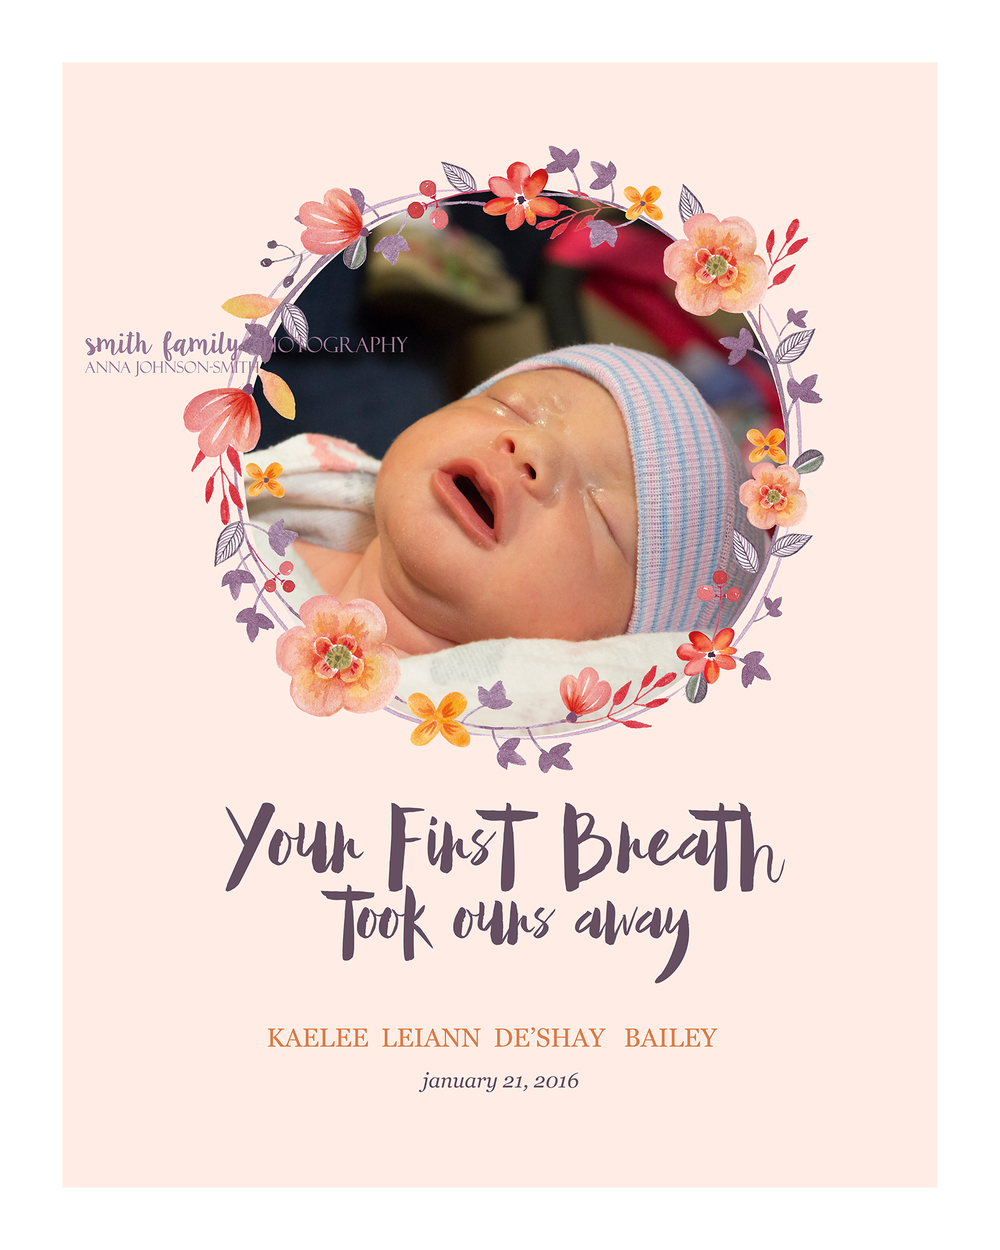 temple_texas_birth_photography_collage